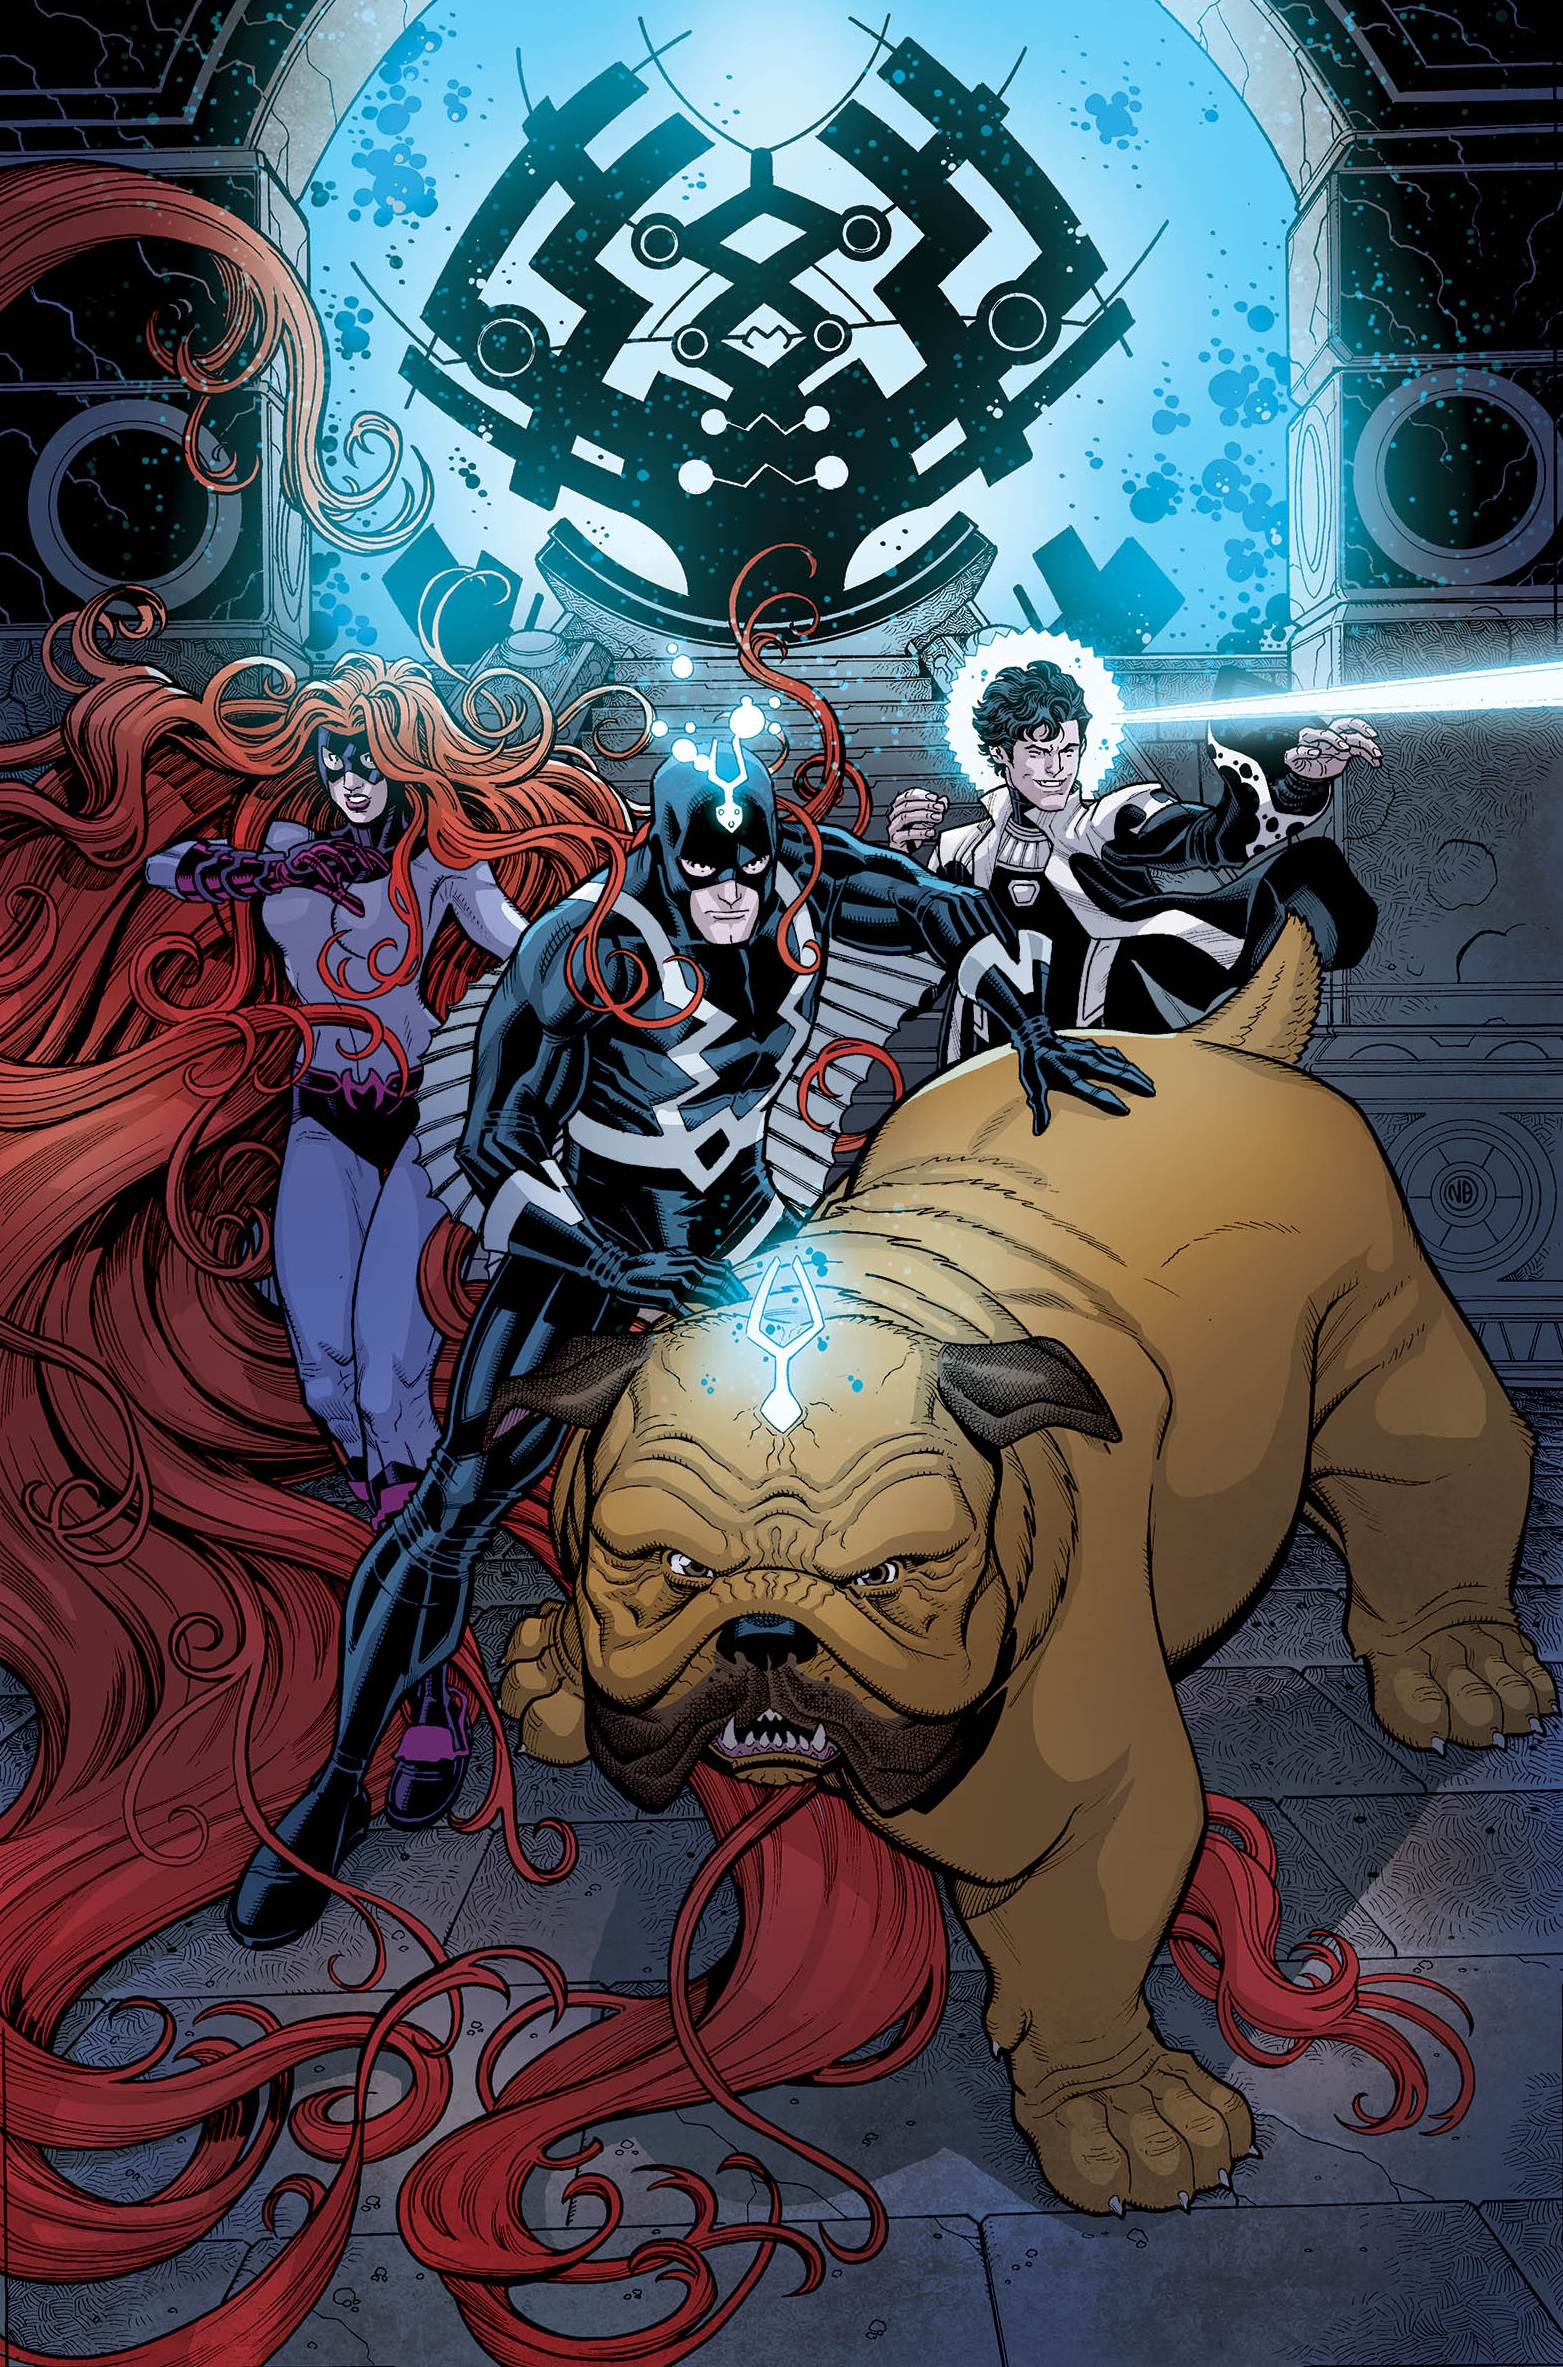 C2E2 Announcement: Marvel's Ressurxion Begins with Inhumans: Once and Future Kings #1